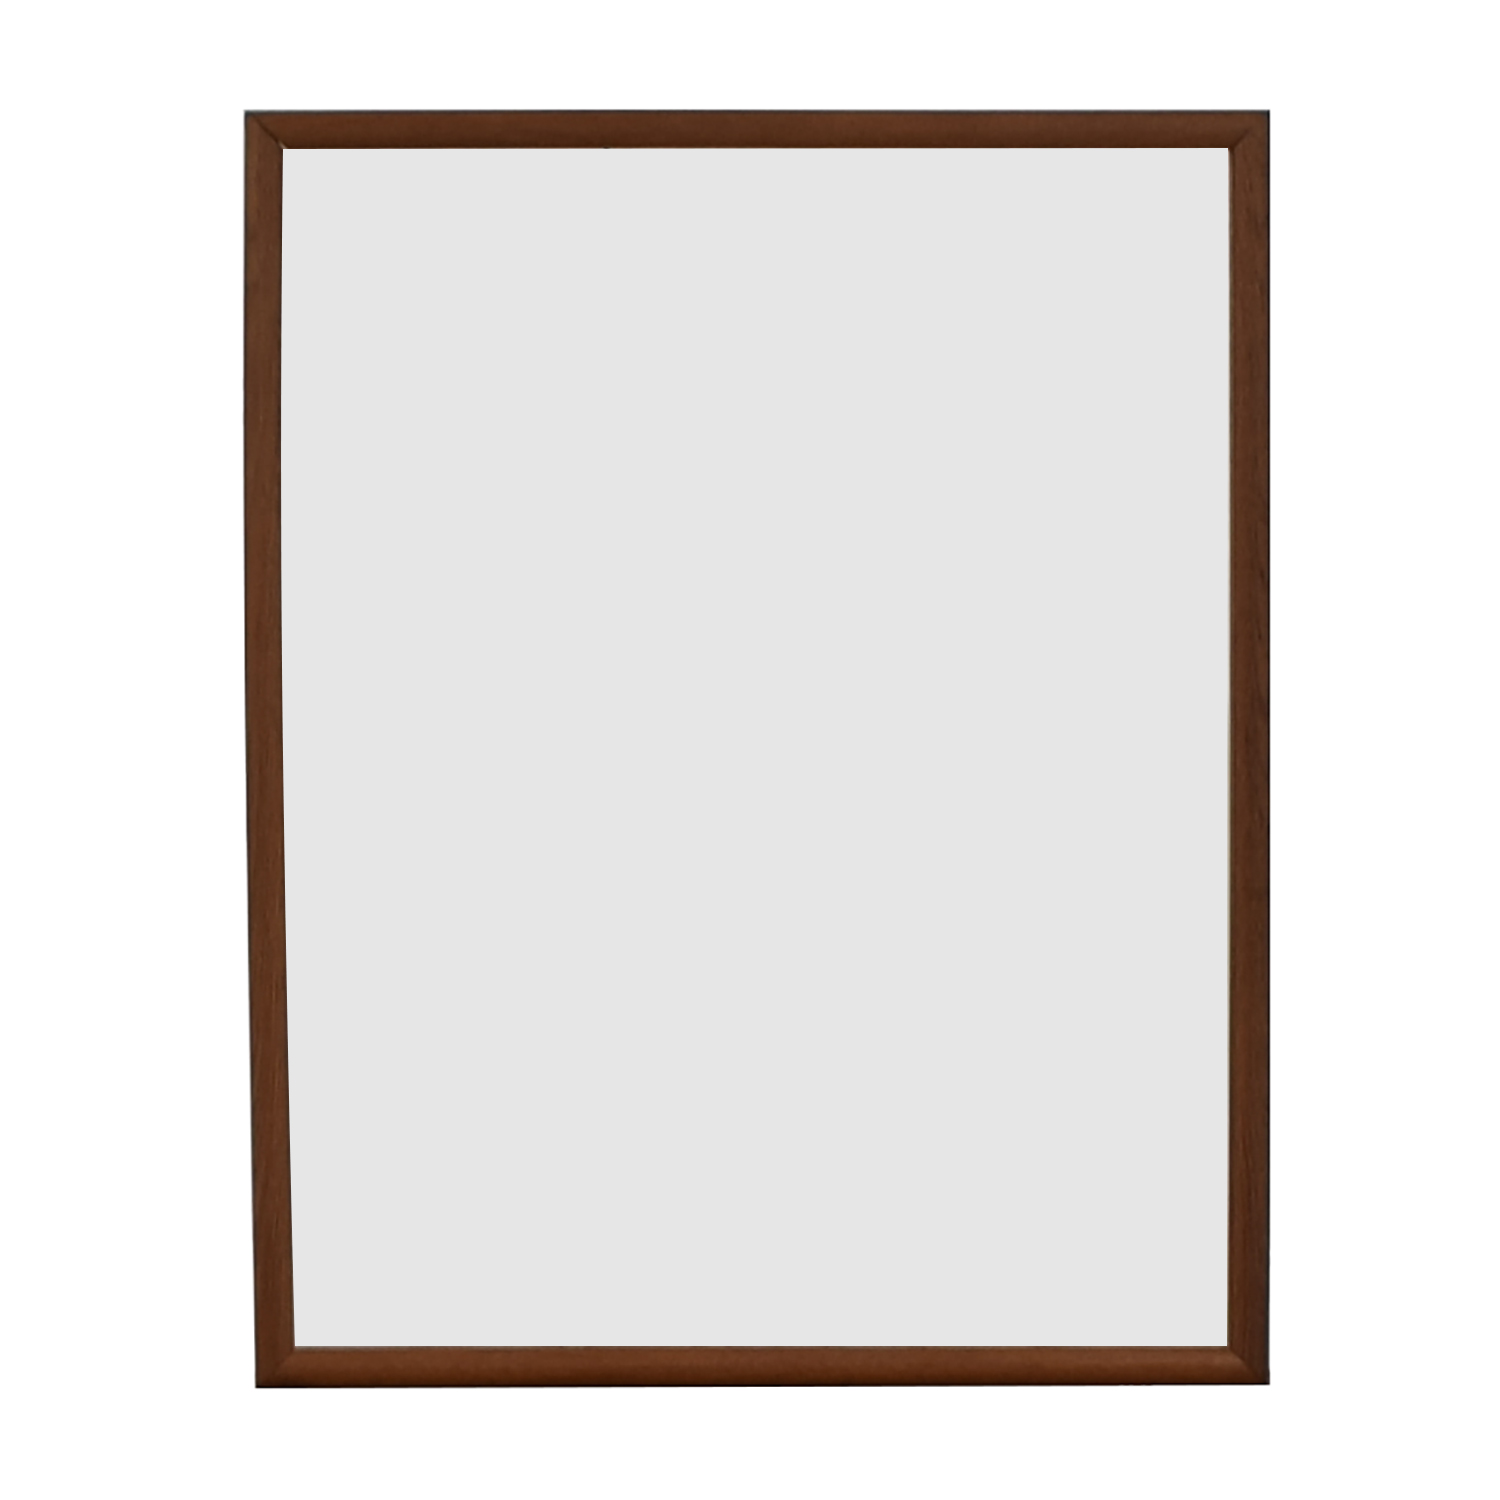 Wood Framed Wall Mirror on sale